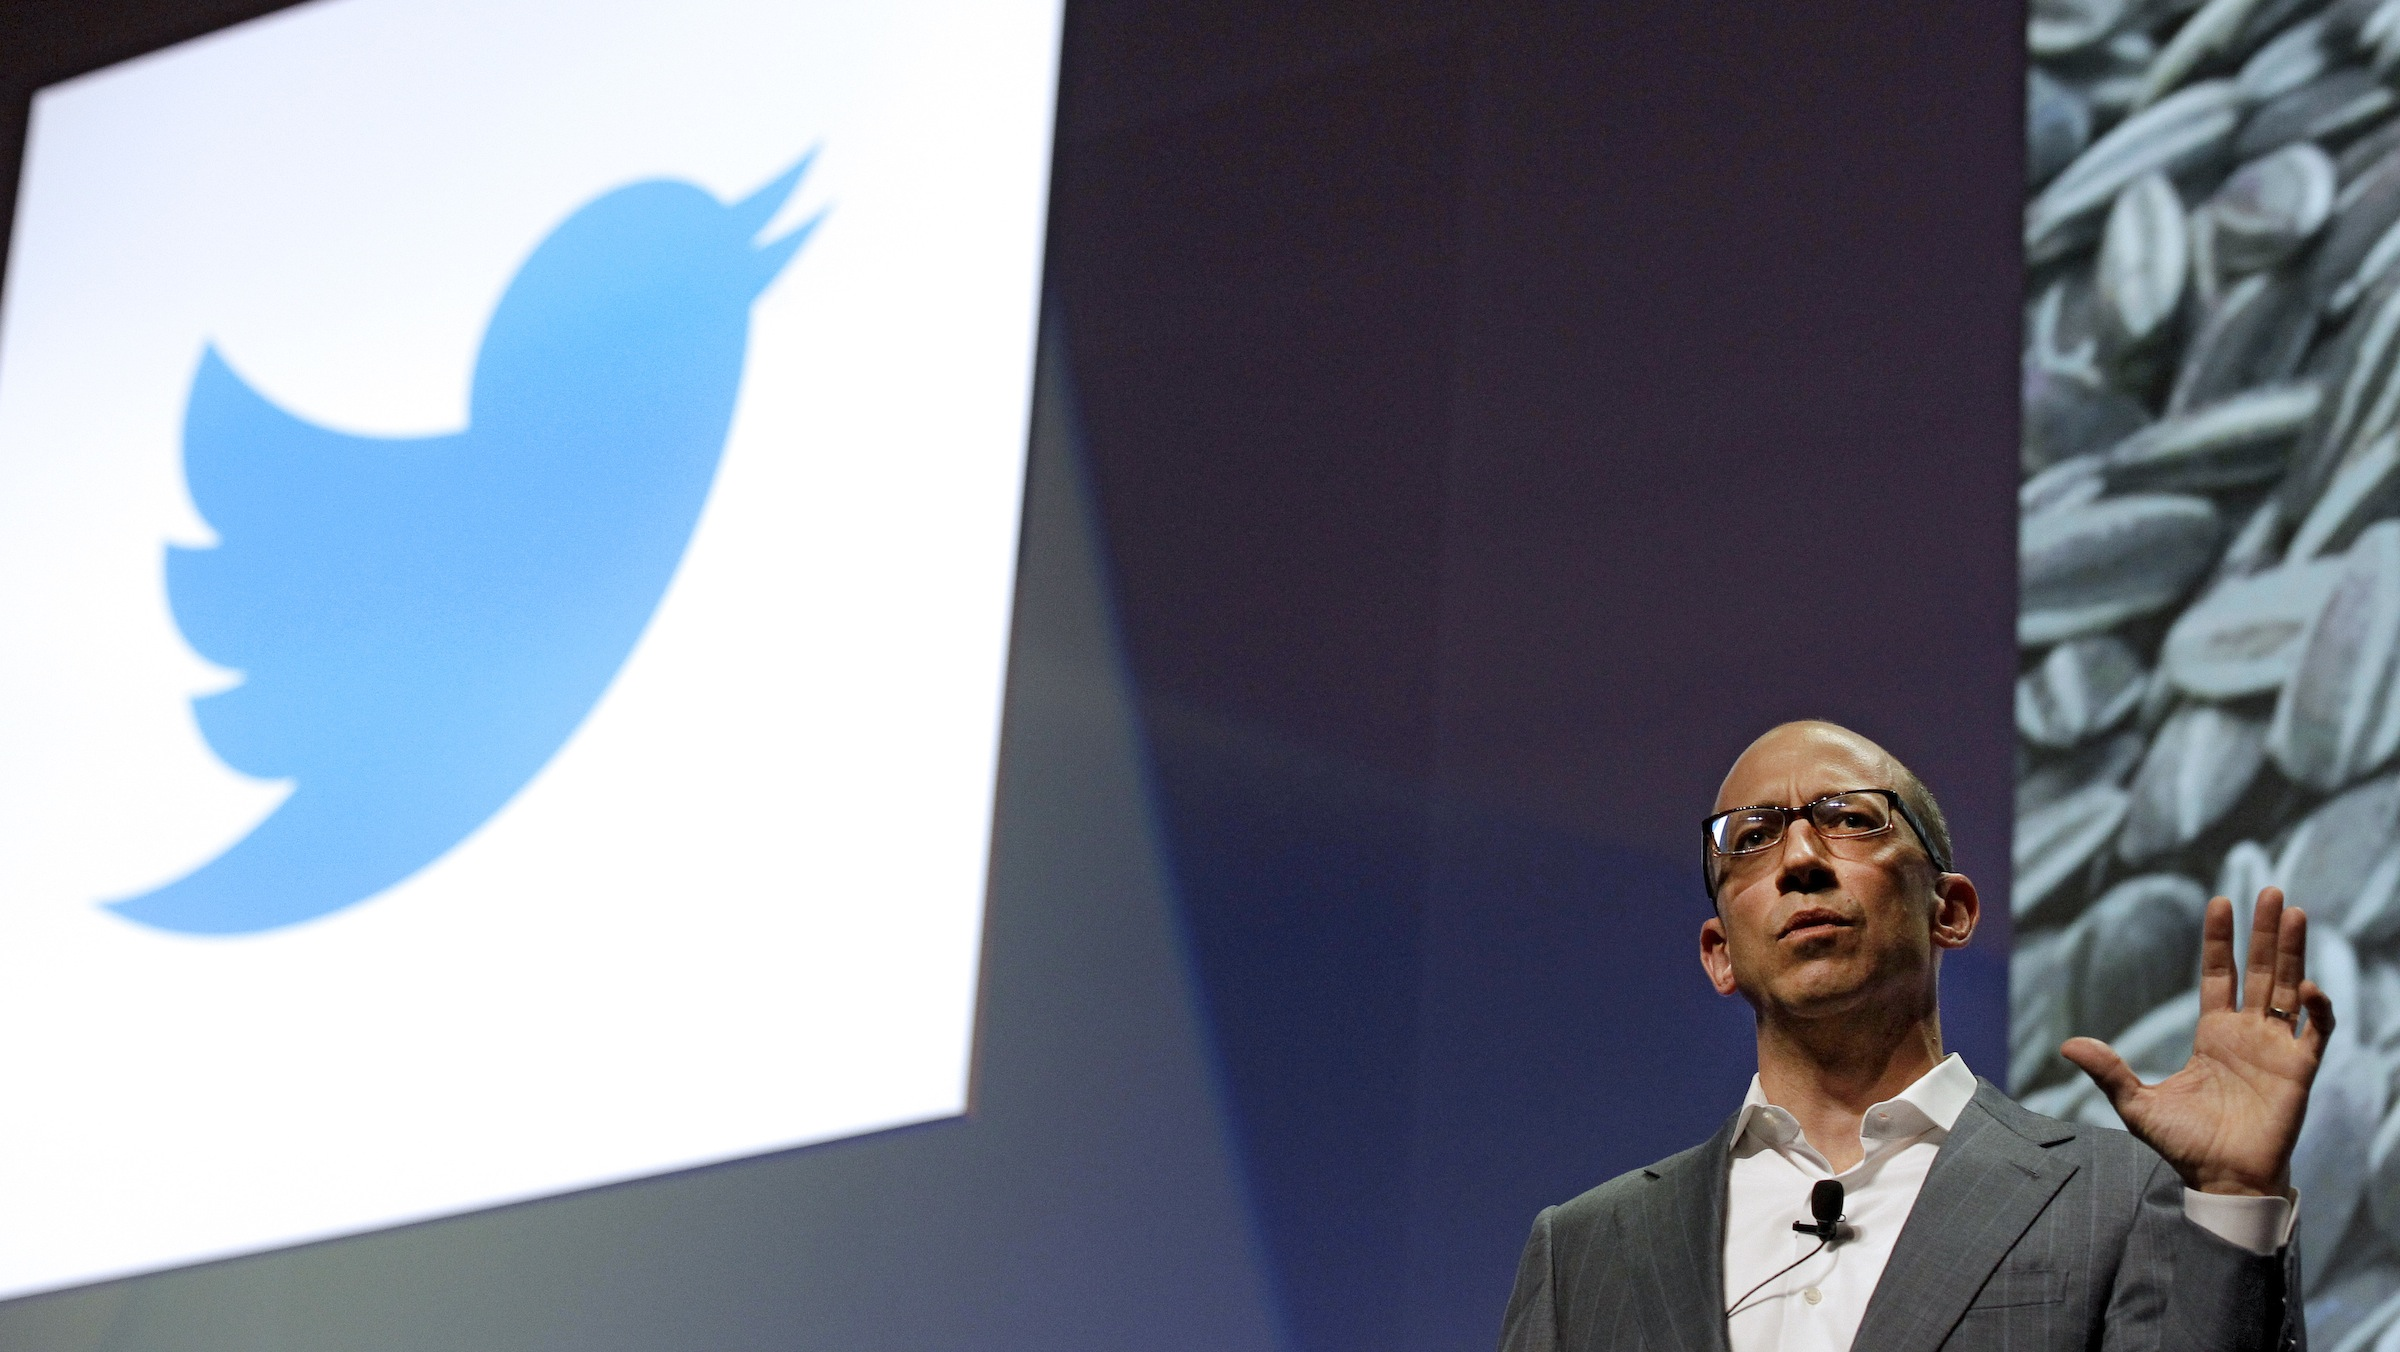 Chief Executive Officer at Twitter, Dick Costolo from USA is seen during a speech at the Cannes Lions 2012, International Advertising Festival in Cannes, southern France, Wednesday, June 20, 2012. The Cannes Lions International Advertising Festival is a world's meeting place for professionals in the communications industry.(AP Photo/Lionel Cironneau)